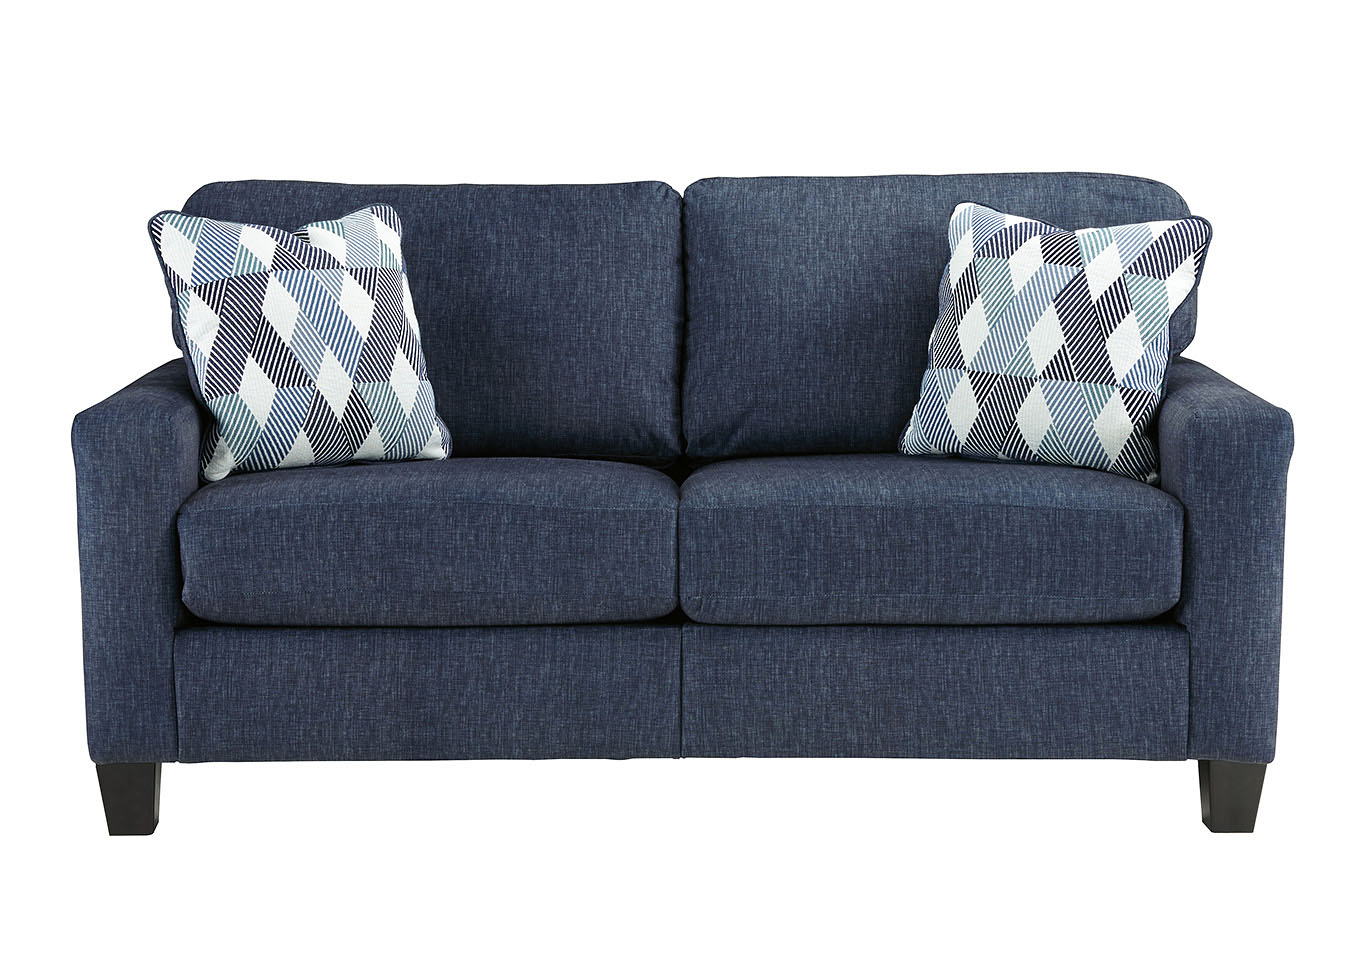 Burgos Navy Sofa,Signature Design By Ashley